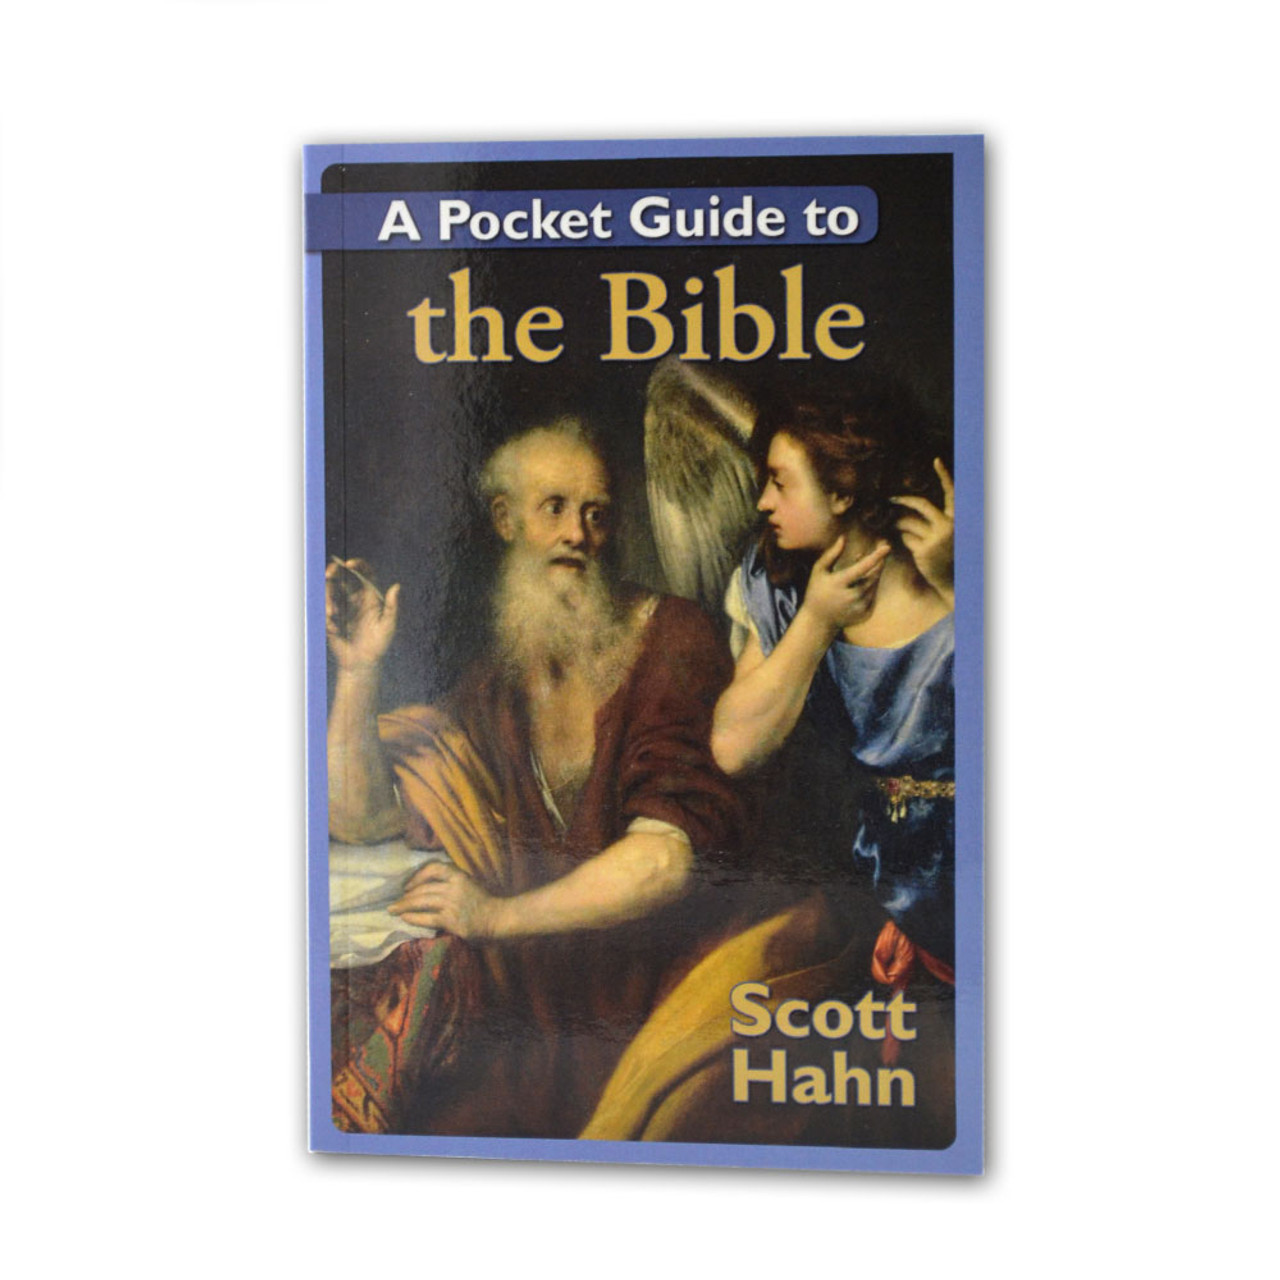 Pocket Guide to the Bible Hahn, Scott